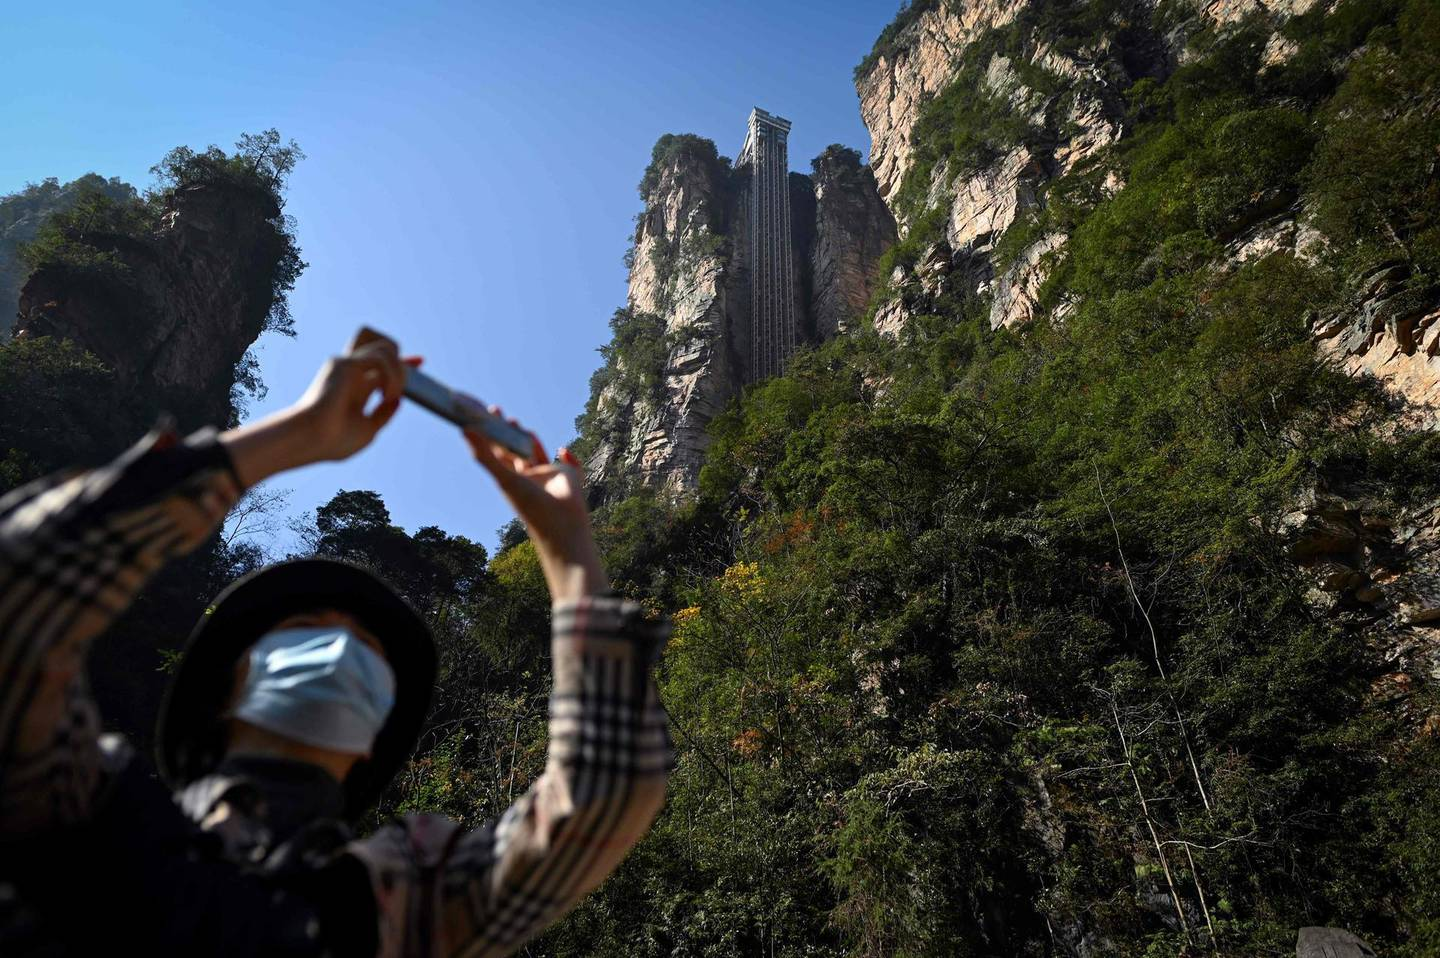 """This picture taken on November 13, 2020 shows a tourist with a face mask using her mobil phone to take a picture at the entrance of the Bailong elevators in Zhangjiajie, China's Hunan province.   Towering more than 300 metres (1,000 feet) up the cliff face that inspired the landscape for the blockbuster movie """"Avatar"""", the world's highest outdoor lift whisks brave tourists to breathtaking views. - TO GO WITH: China technology film tourism transport, by Ludovic EHRET  / AFP / WANG ZHAO / TO GO WITH: China technology film tourism transport, by Ludovic EHRET"""